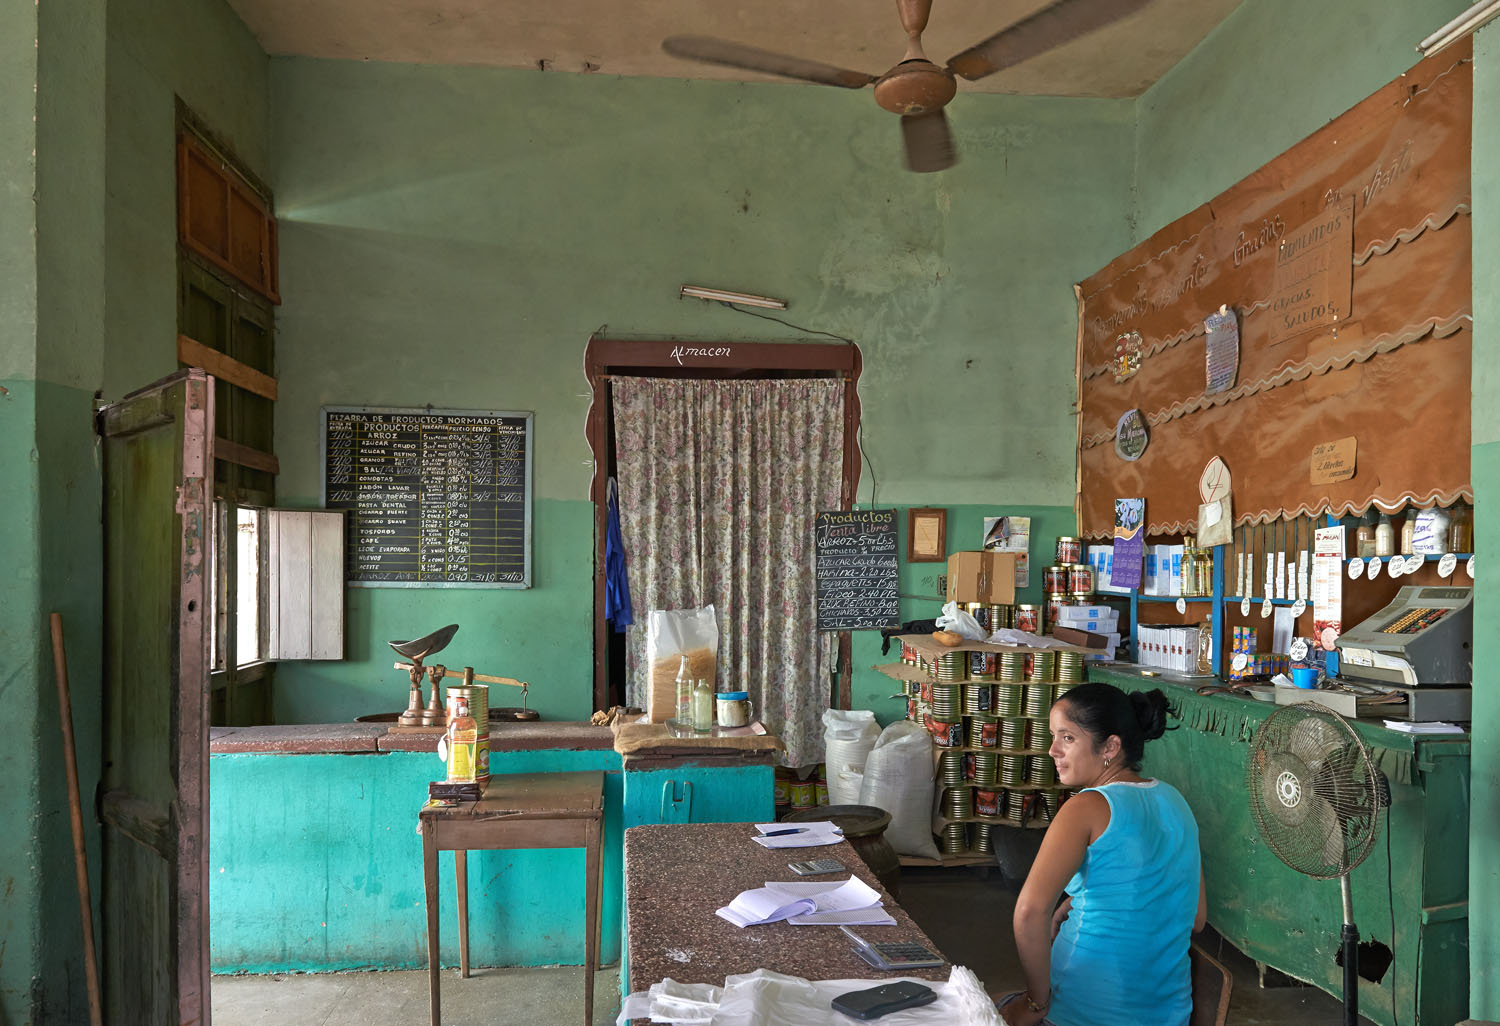 """TRINIDAD. A """" CONVENIENCE """" STORE FOR BASIC NECESSITIES SUCH AS RICE, SALT, DETERGENT, TOOTH PASTE ET CETERA. MOST OF THESE PRODUCTS ARE OF AVERAGE TO POOR QUALITY FOR MOST CUBANS WITH AN OFFICIAL AVERAGE INCOME OF EUR 20,00 A MONTH."""